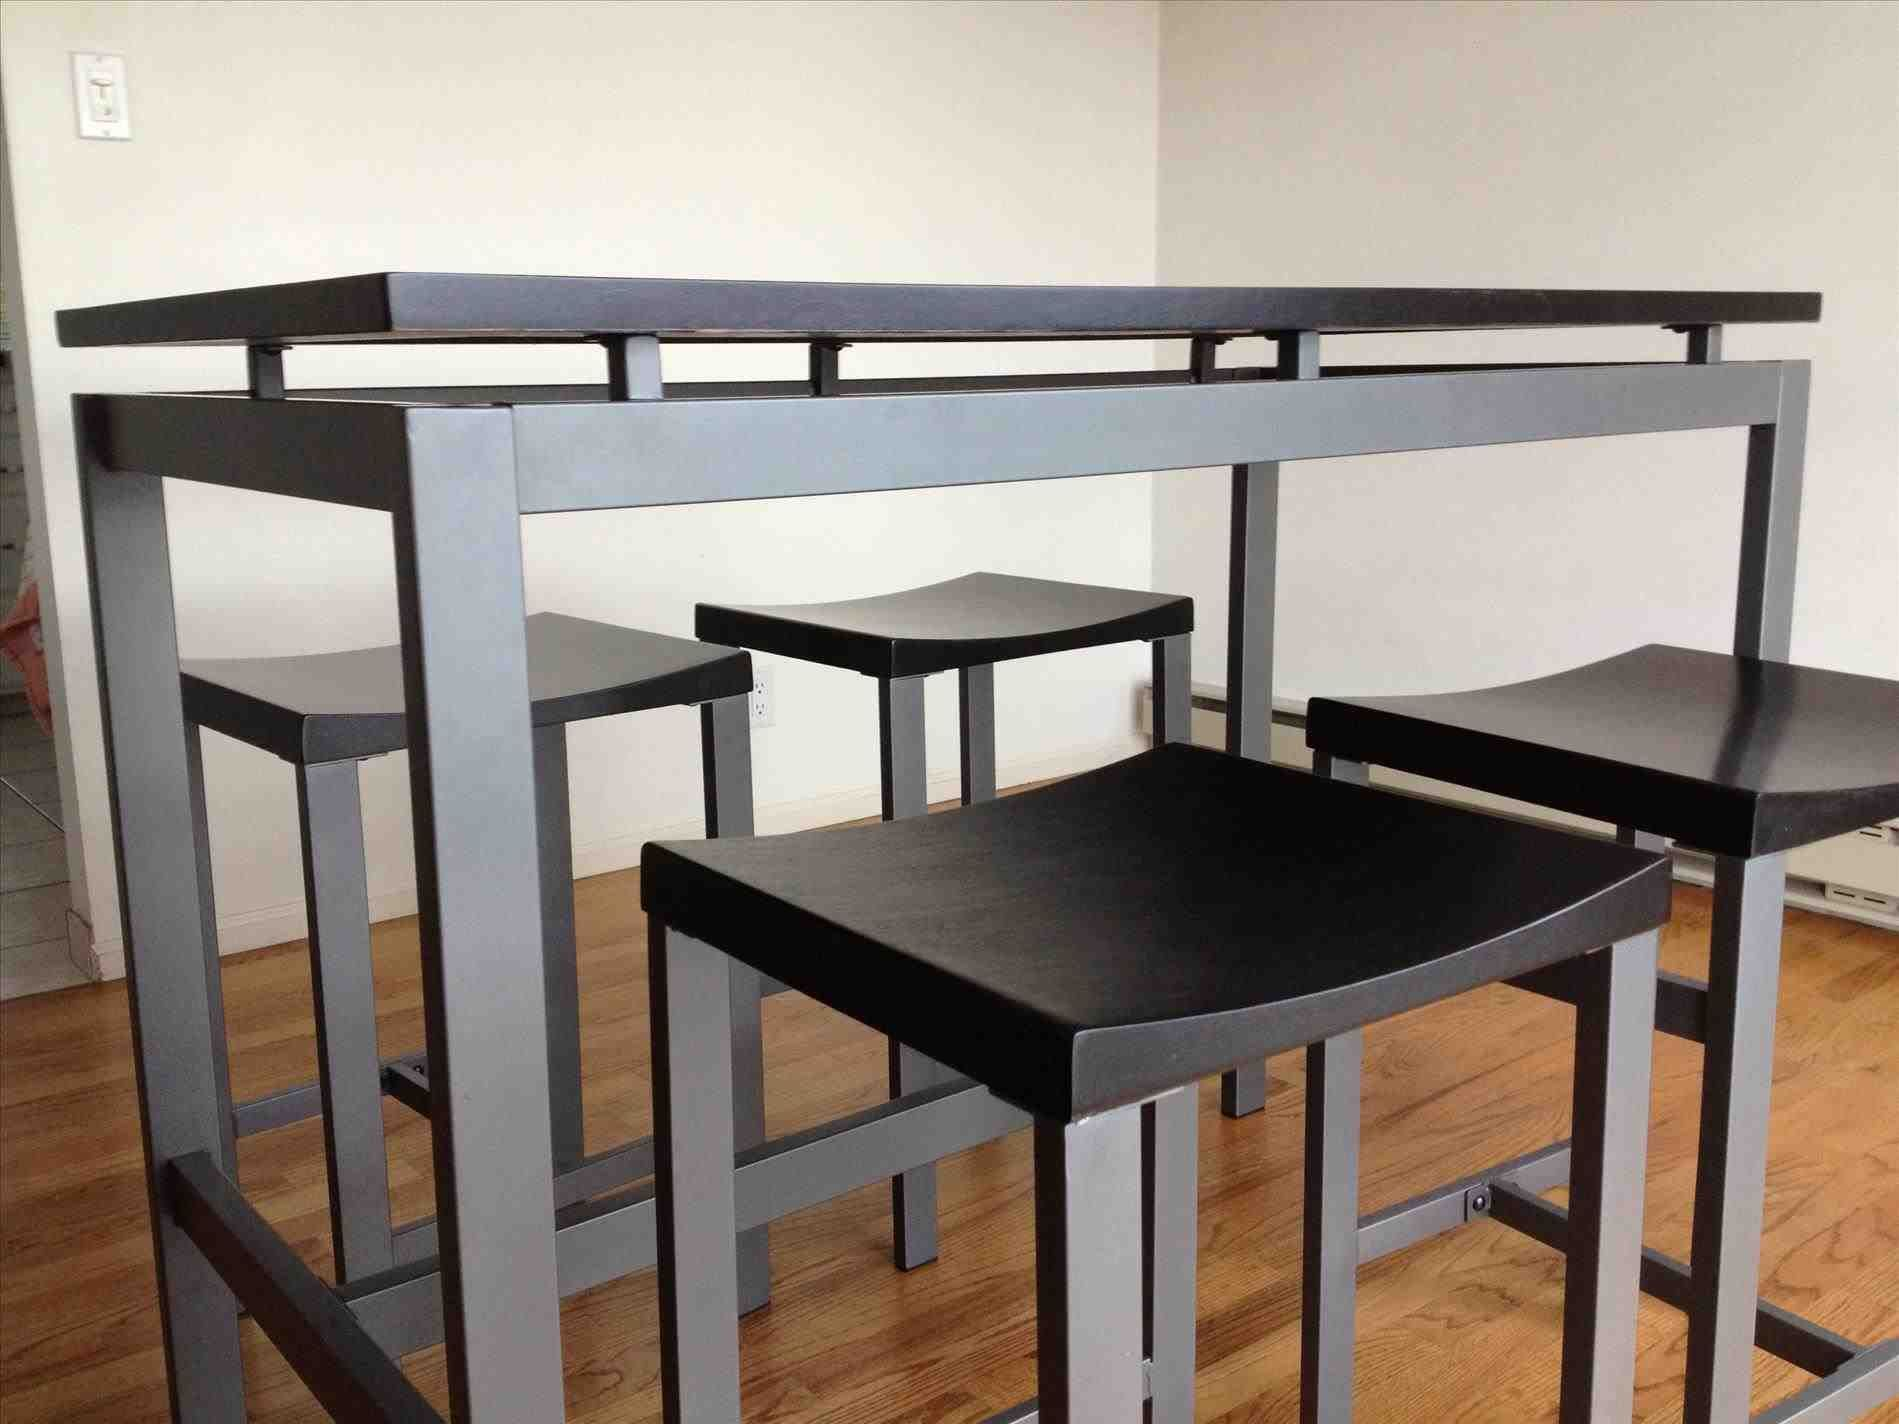 New Post High Dining Table With Stools Decors Ideas Pinterest  # Muebles De Zoita